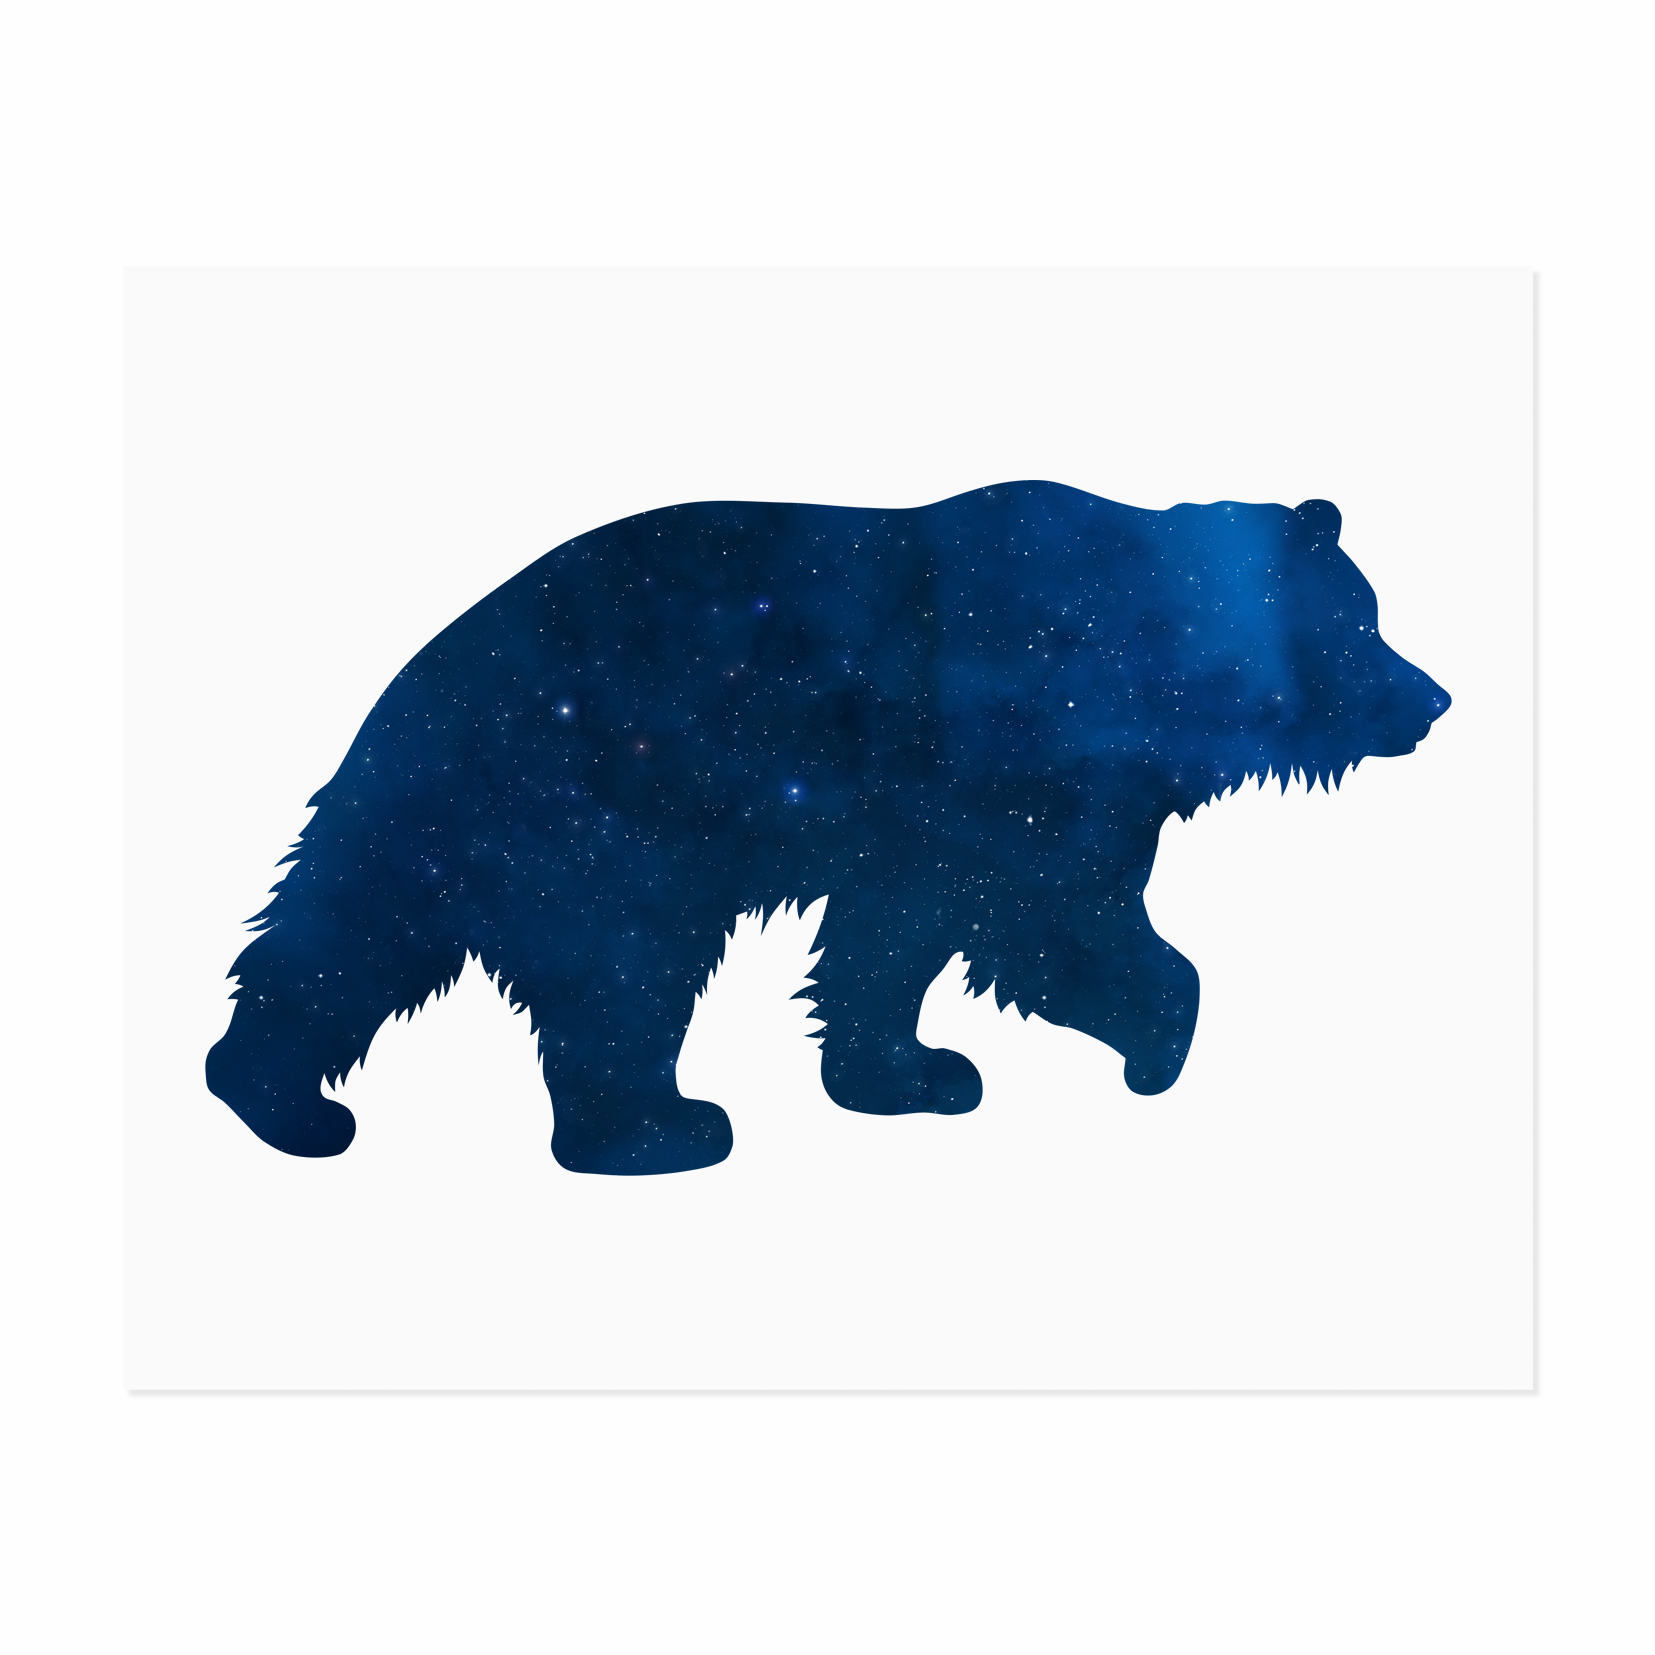 1655x1655 A Starry Galaxy Inside A Beautiful Bear Silhouette. The Perfect